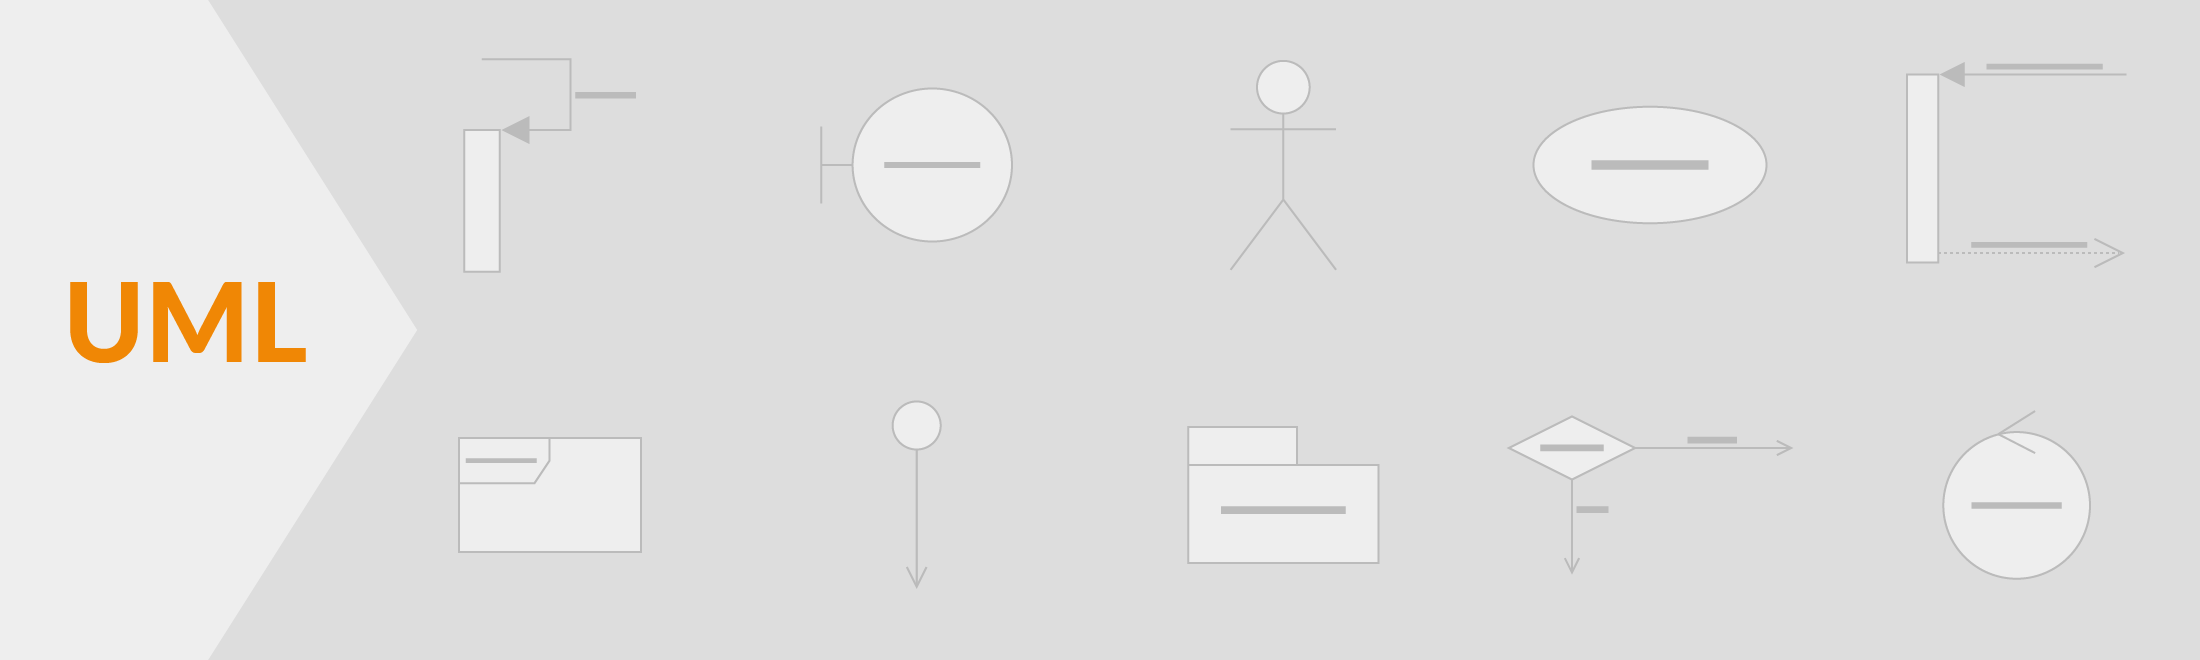 create a variety of different uml diagrams with draw.io